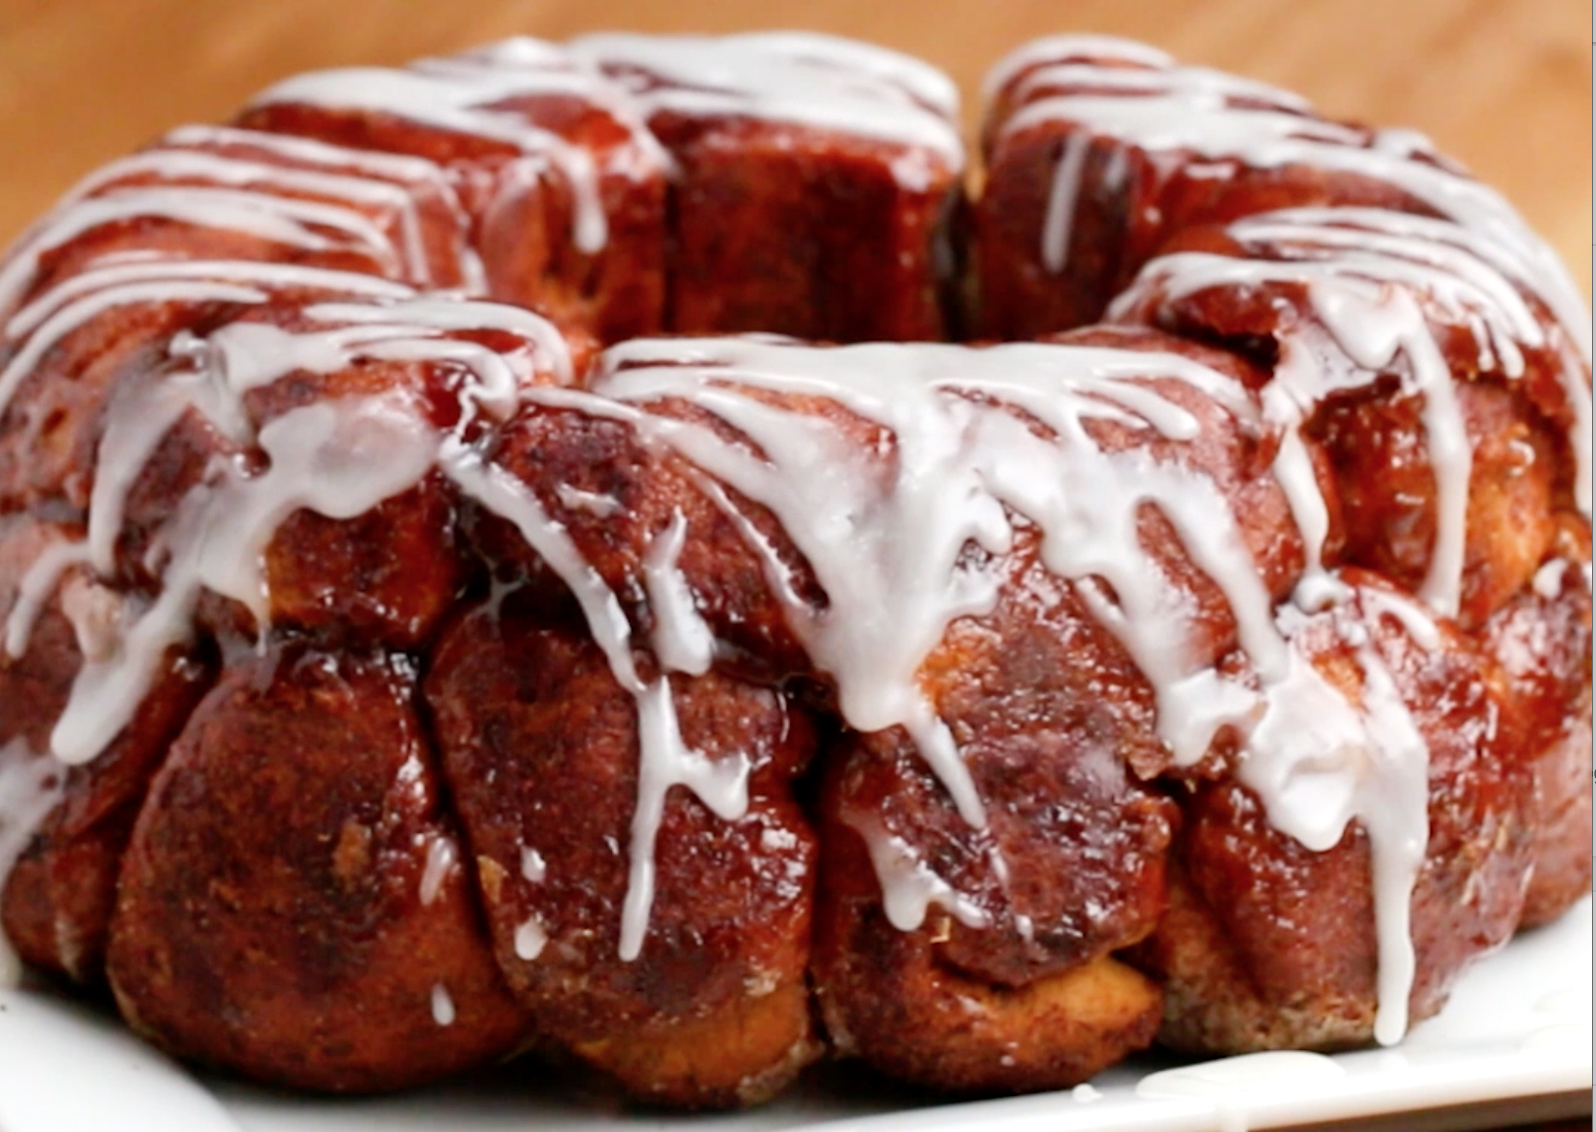 These 6 Easy Cinnamon Roll Recipes Will Satisfy All Your Cravings